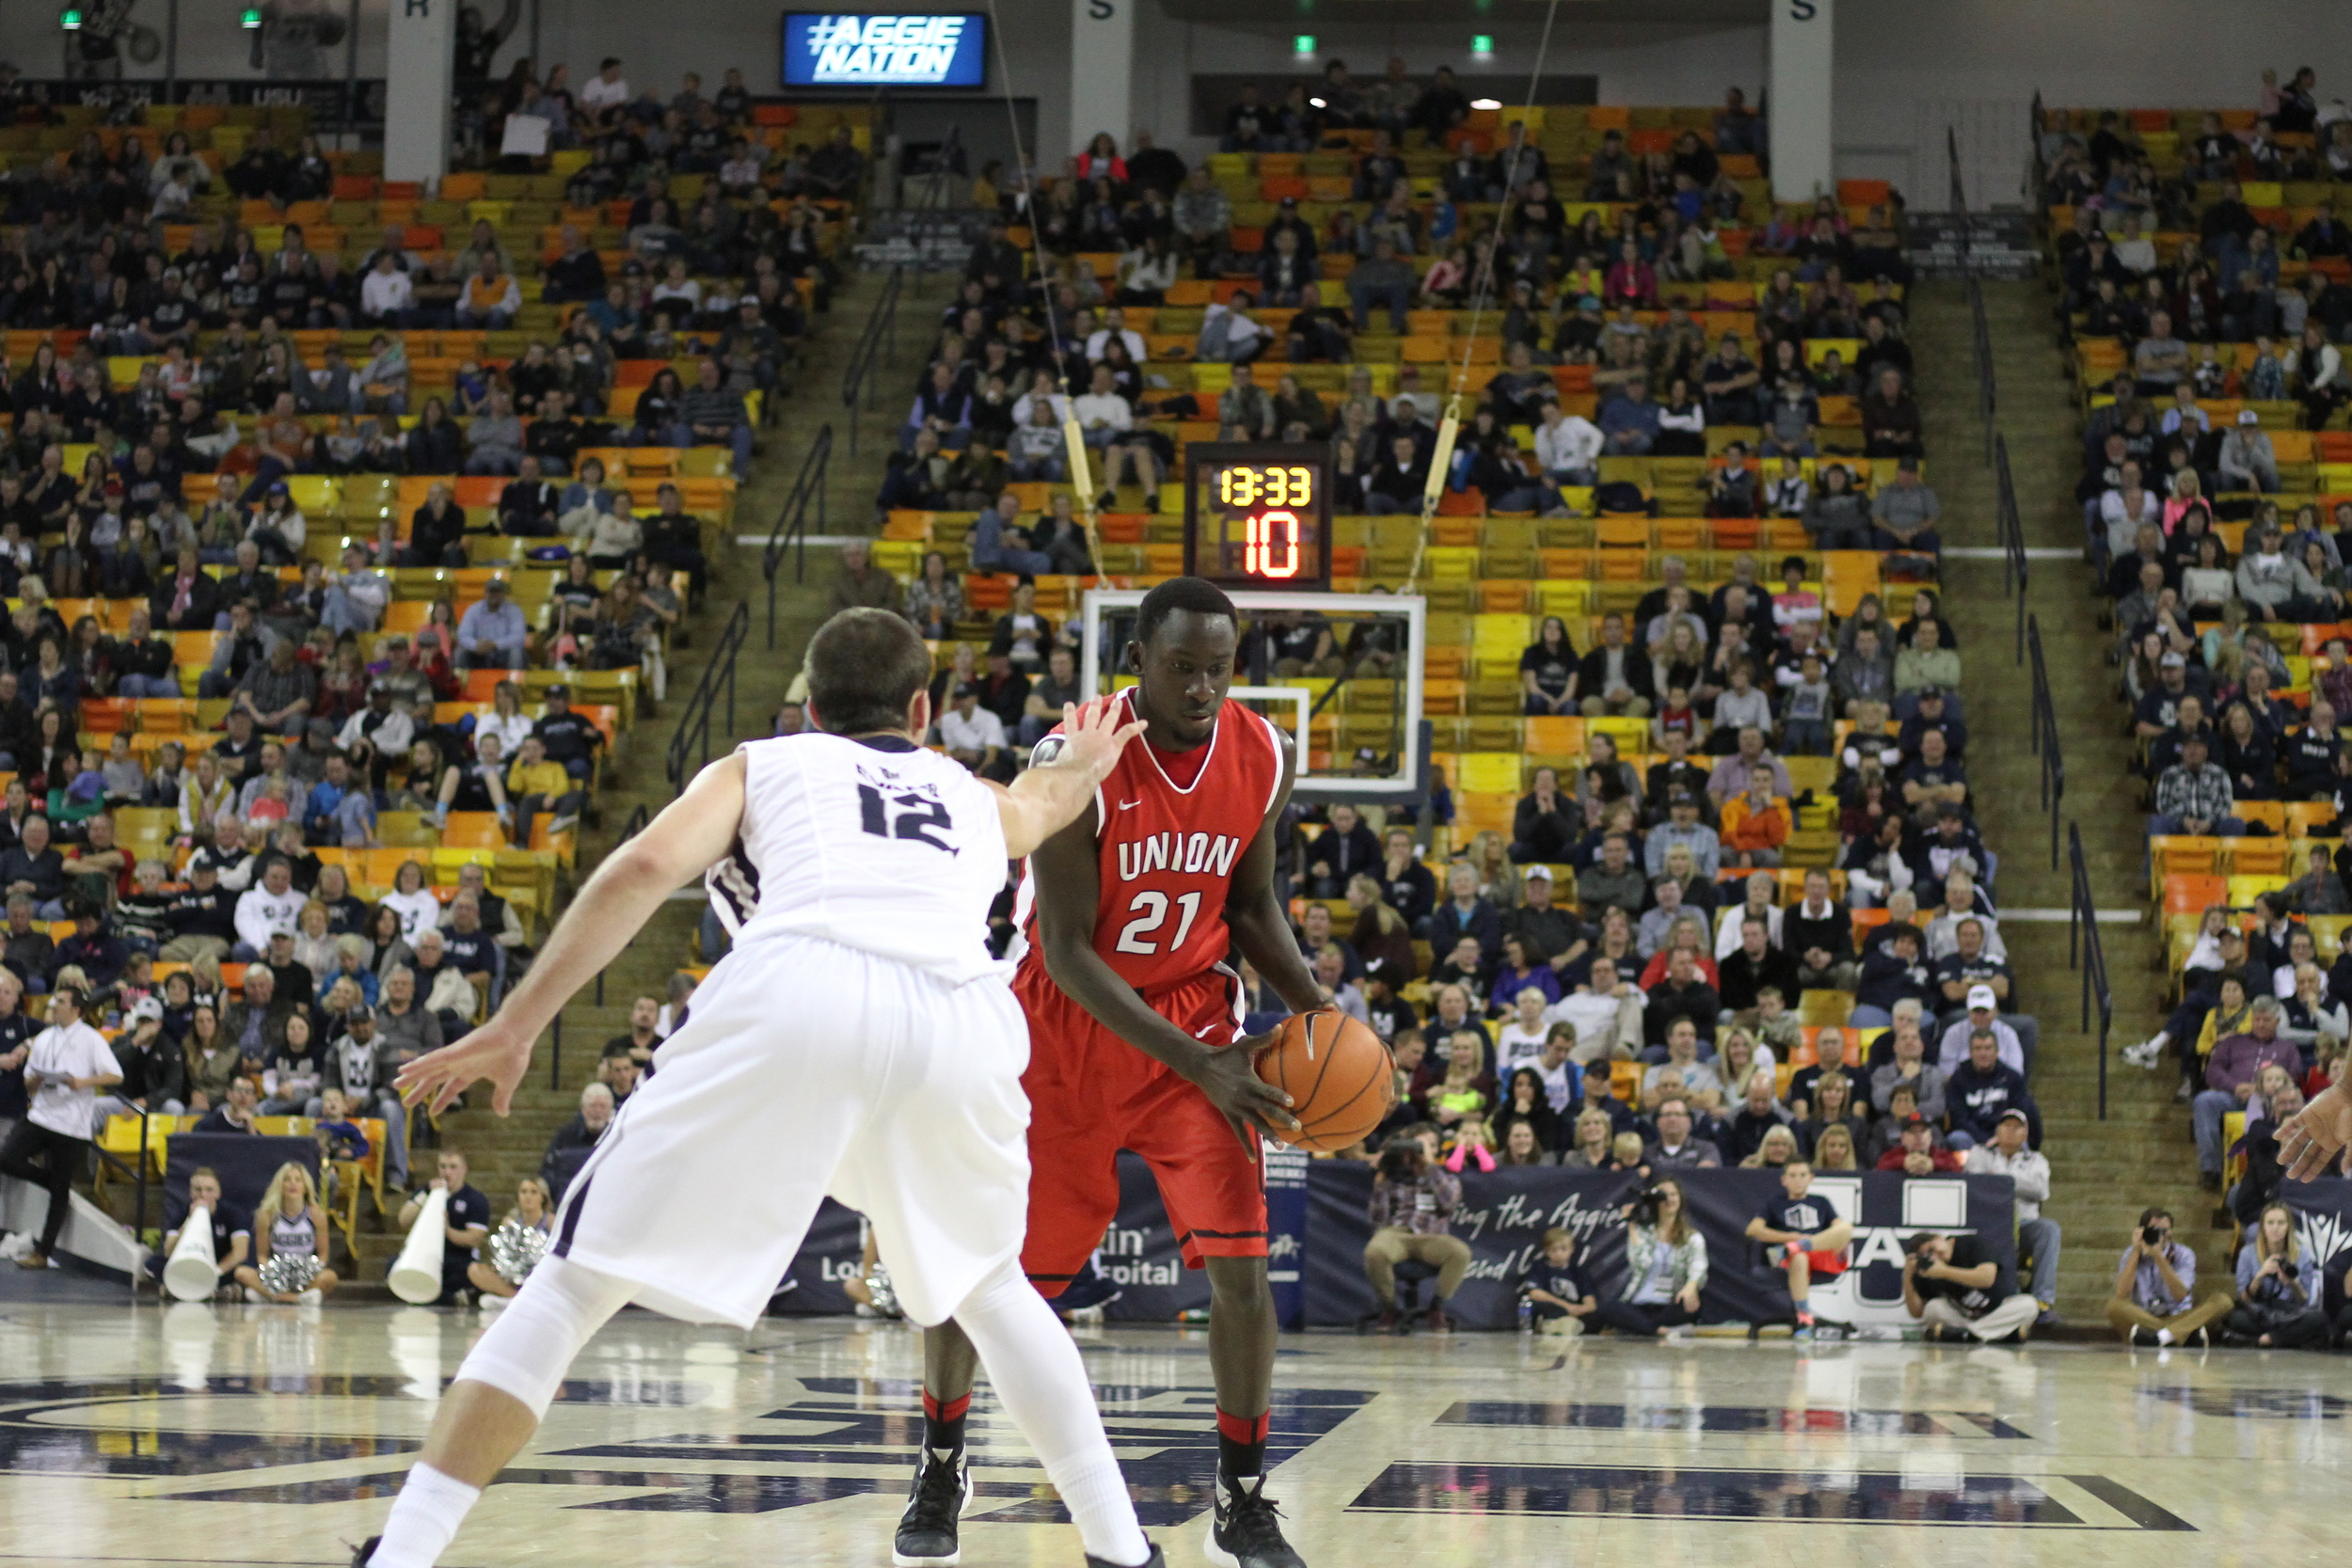 Serigne Mboup finished his college career with a double-double in his final game